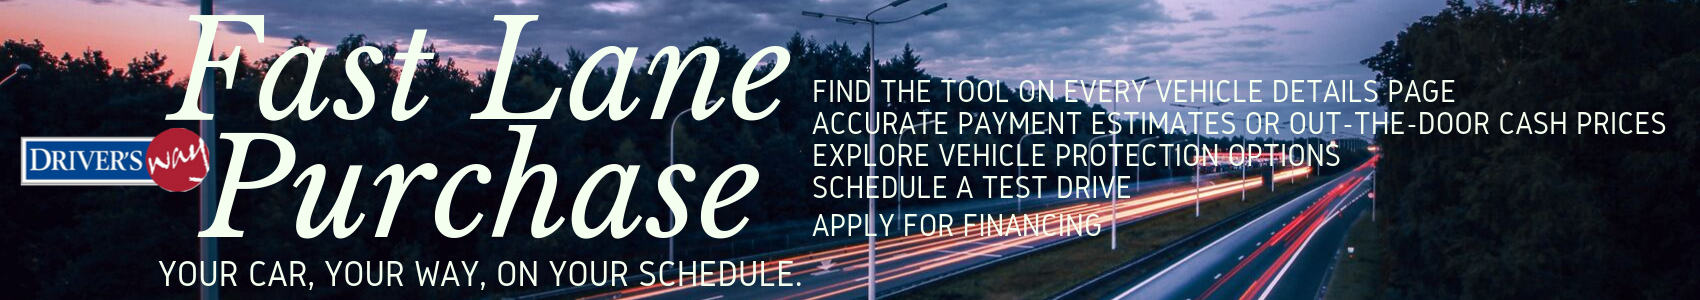 fast lane purchase tool